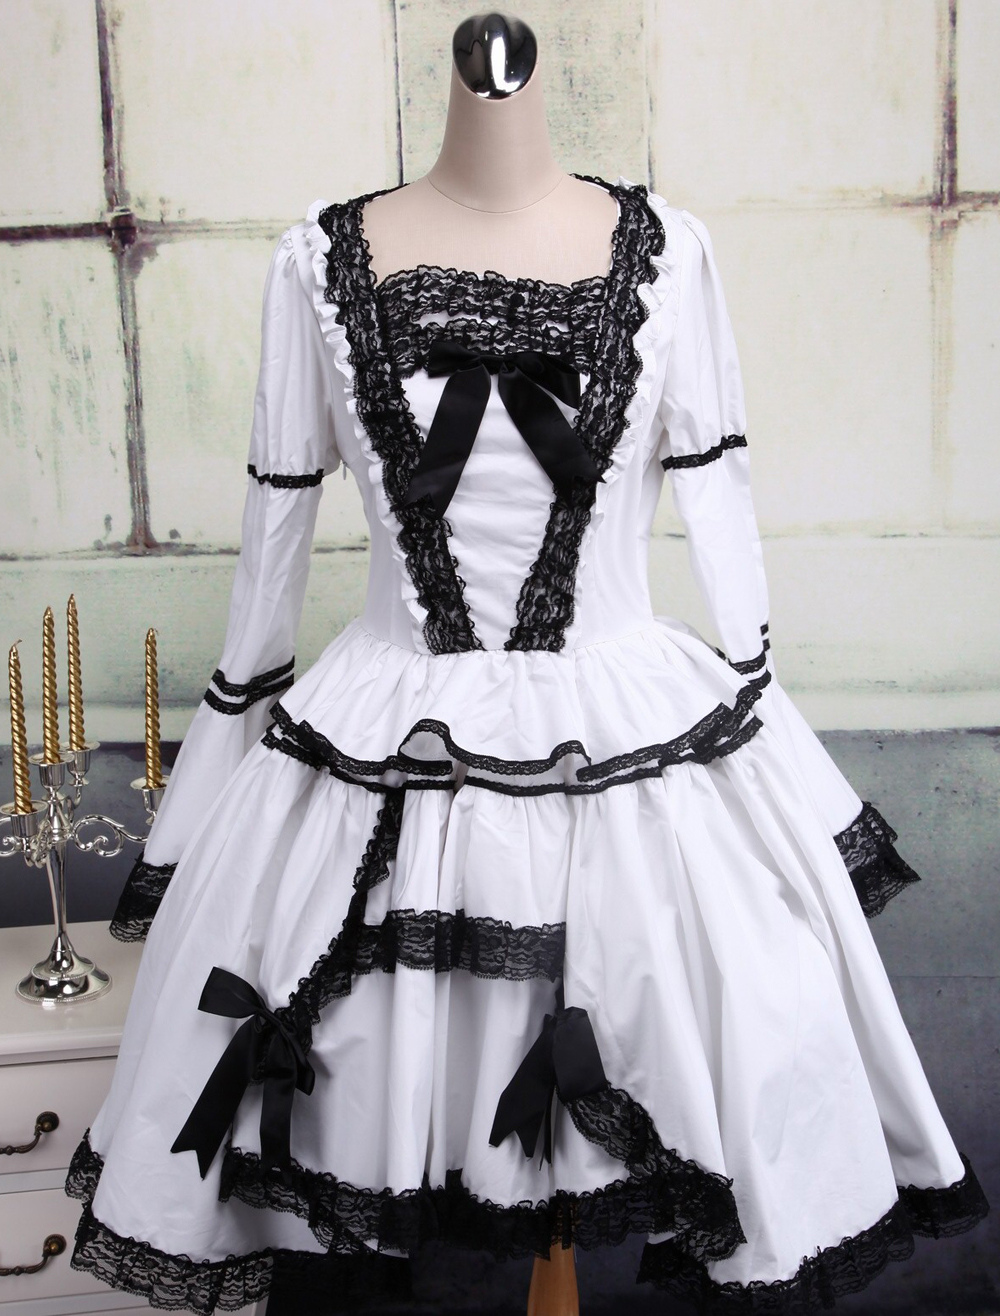 Buy Gothic Lolita Dress OP White Long Sleeves Black Lace Trim Two Layer Lolita One Piece Dress for $83.99 in Milanoo store